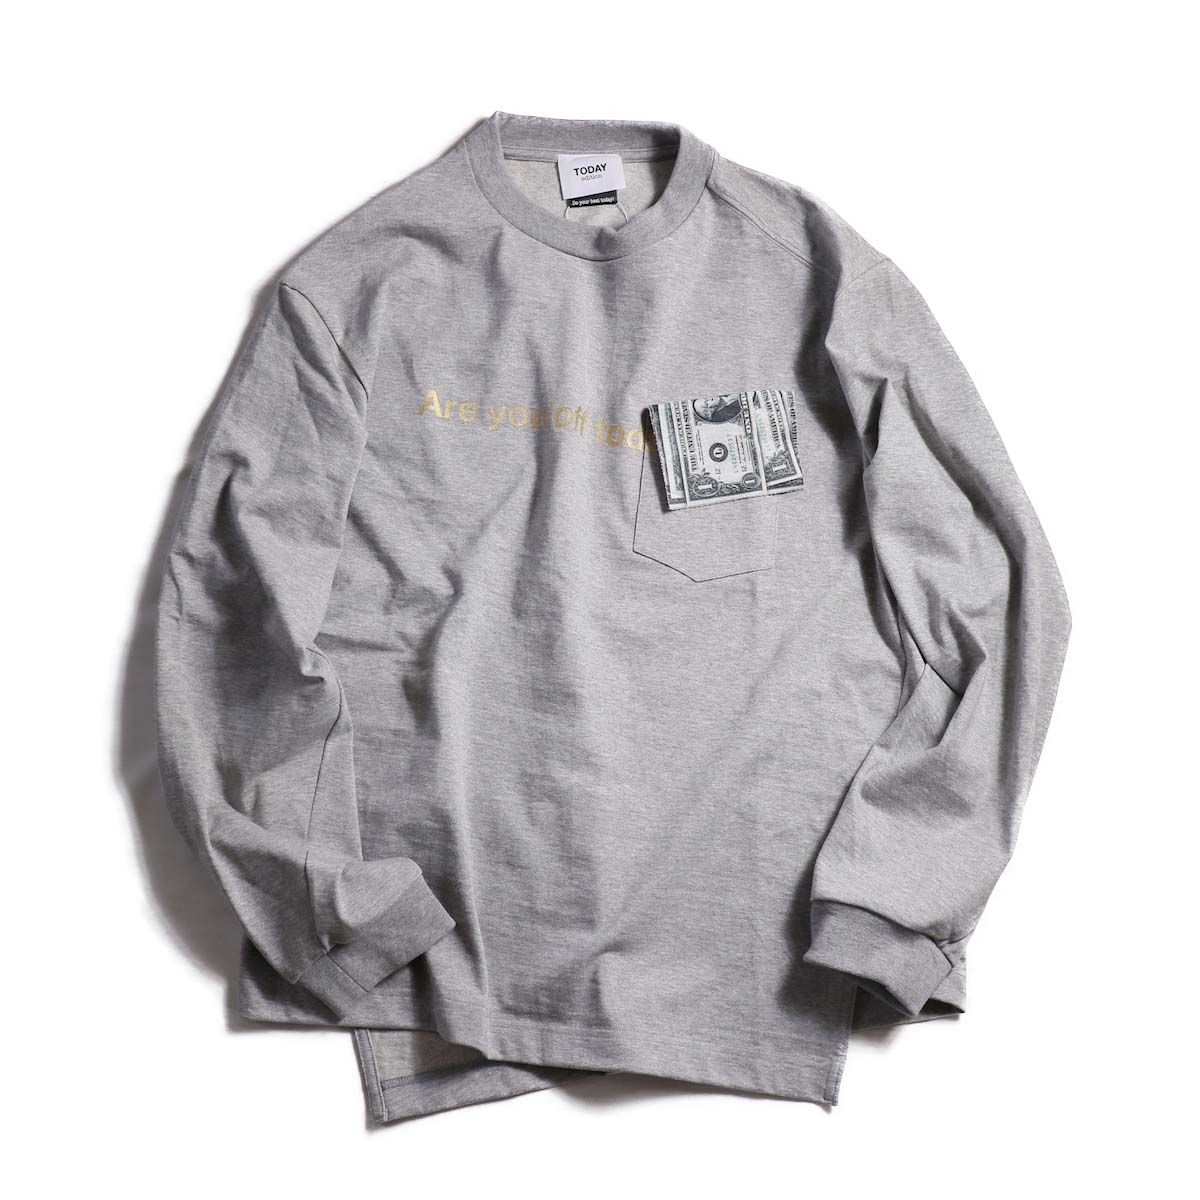 TODAY edition / ARE YOU OFF TODAY? $Pocket tee -Gray